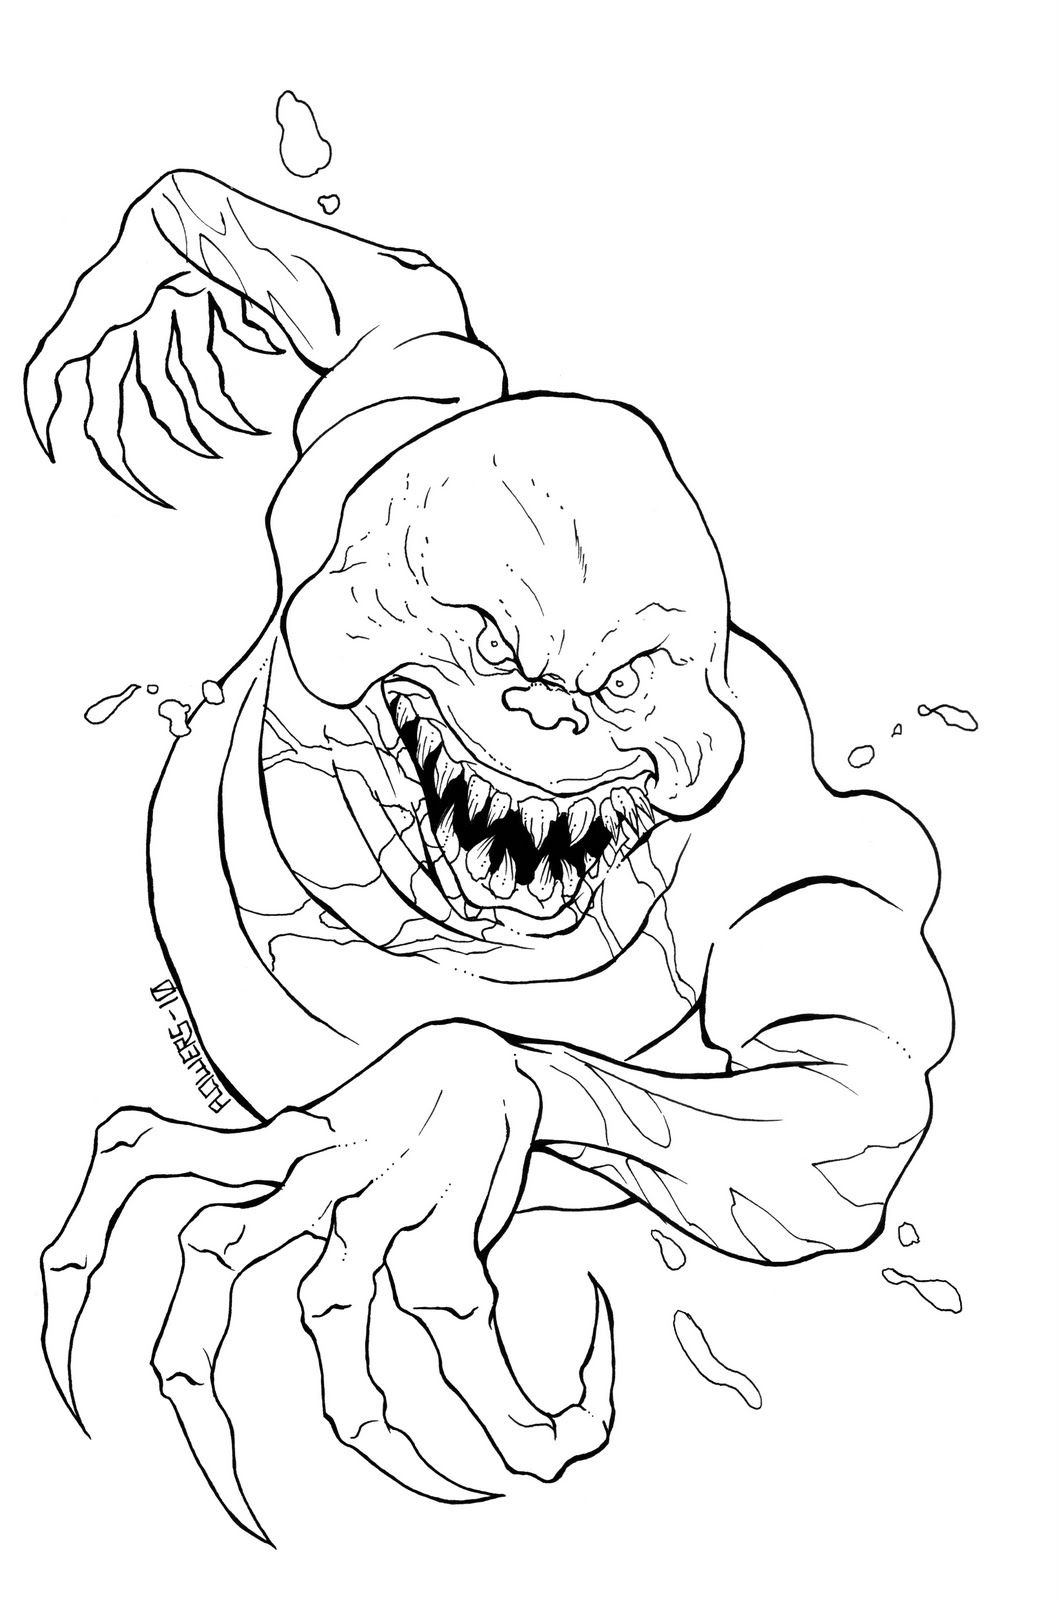 Horror Coloring Pages Google Search Scary Coloring Pages Halloween Coloring Pages Halloween Coloring